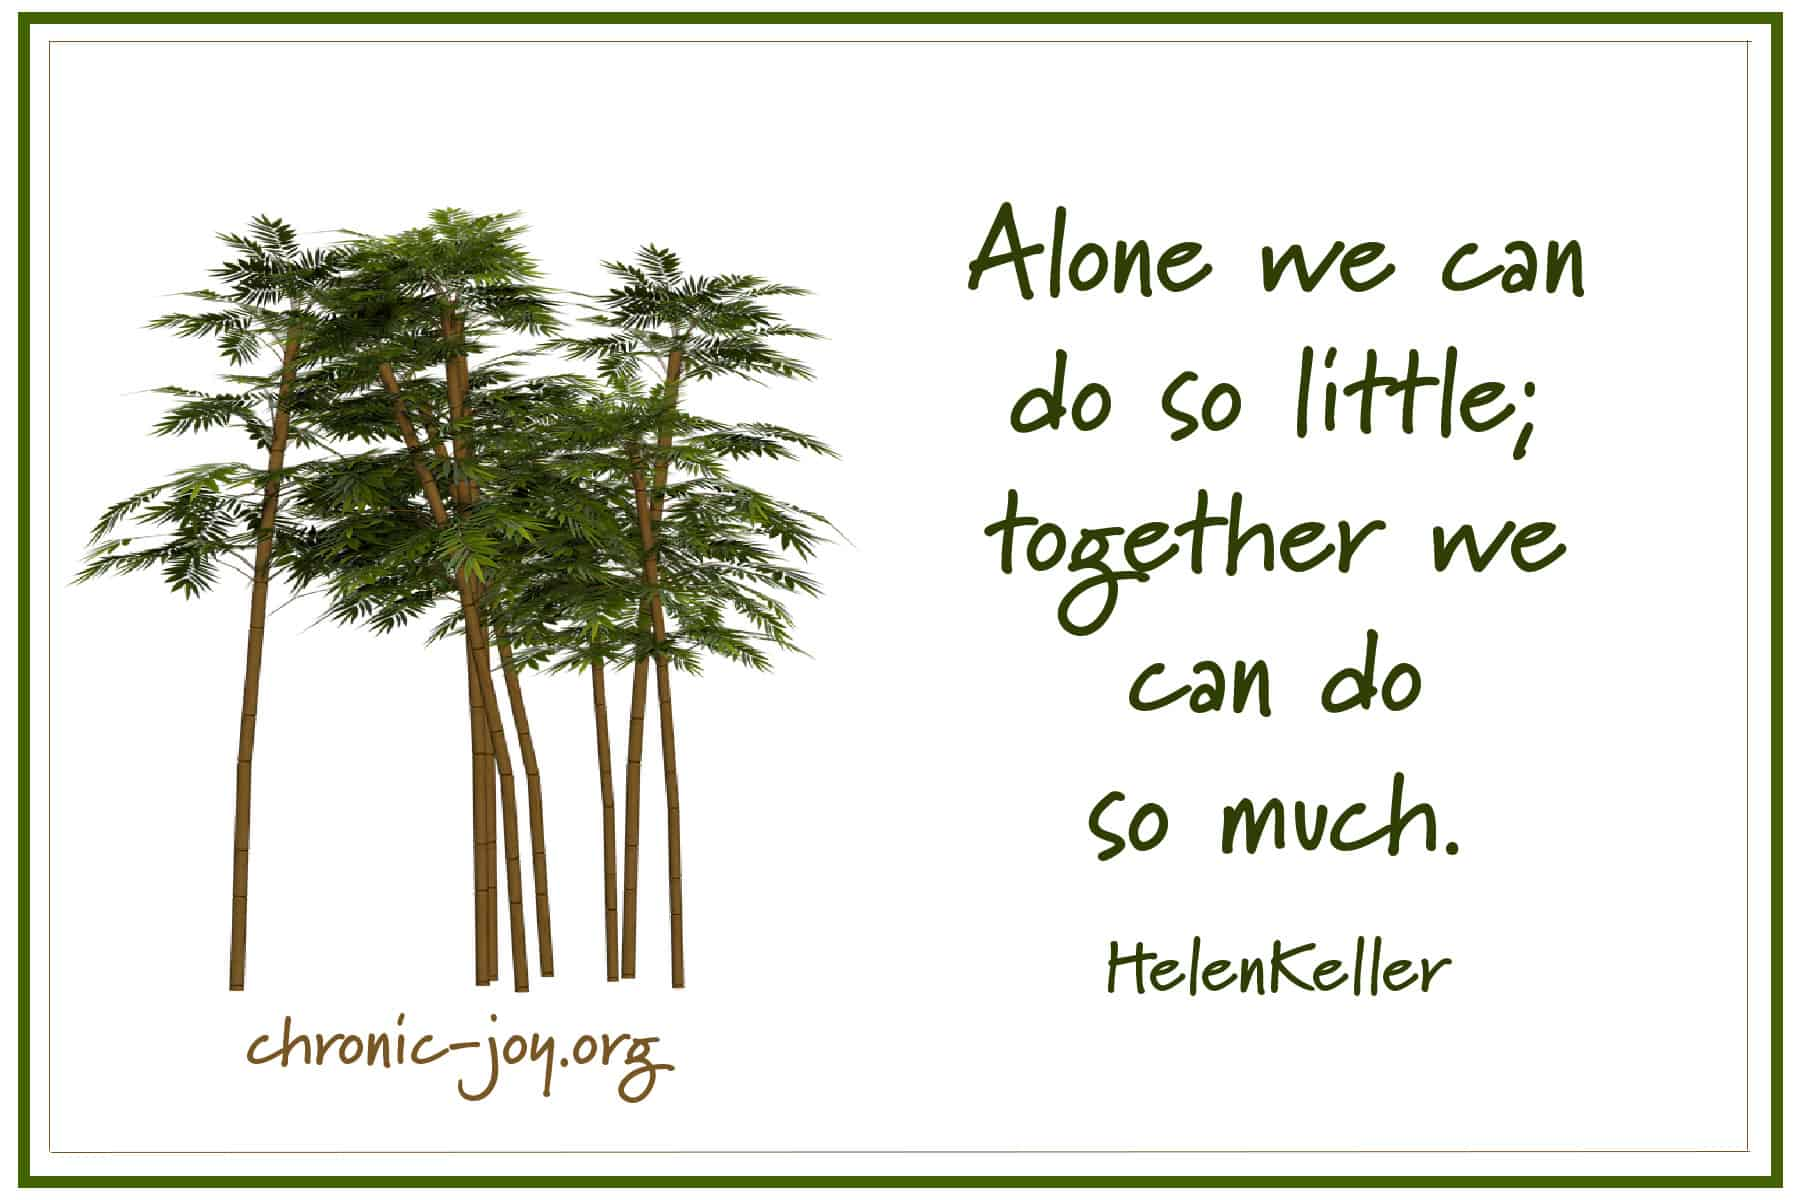 Alone we can do so little, together we can do so much. ~ Helen Keller